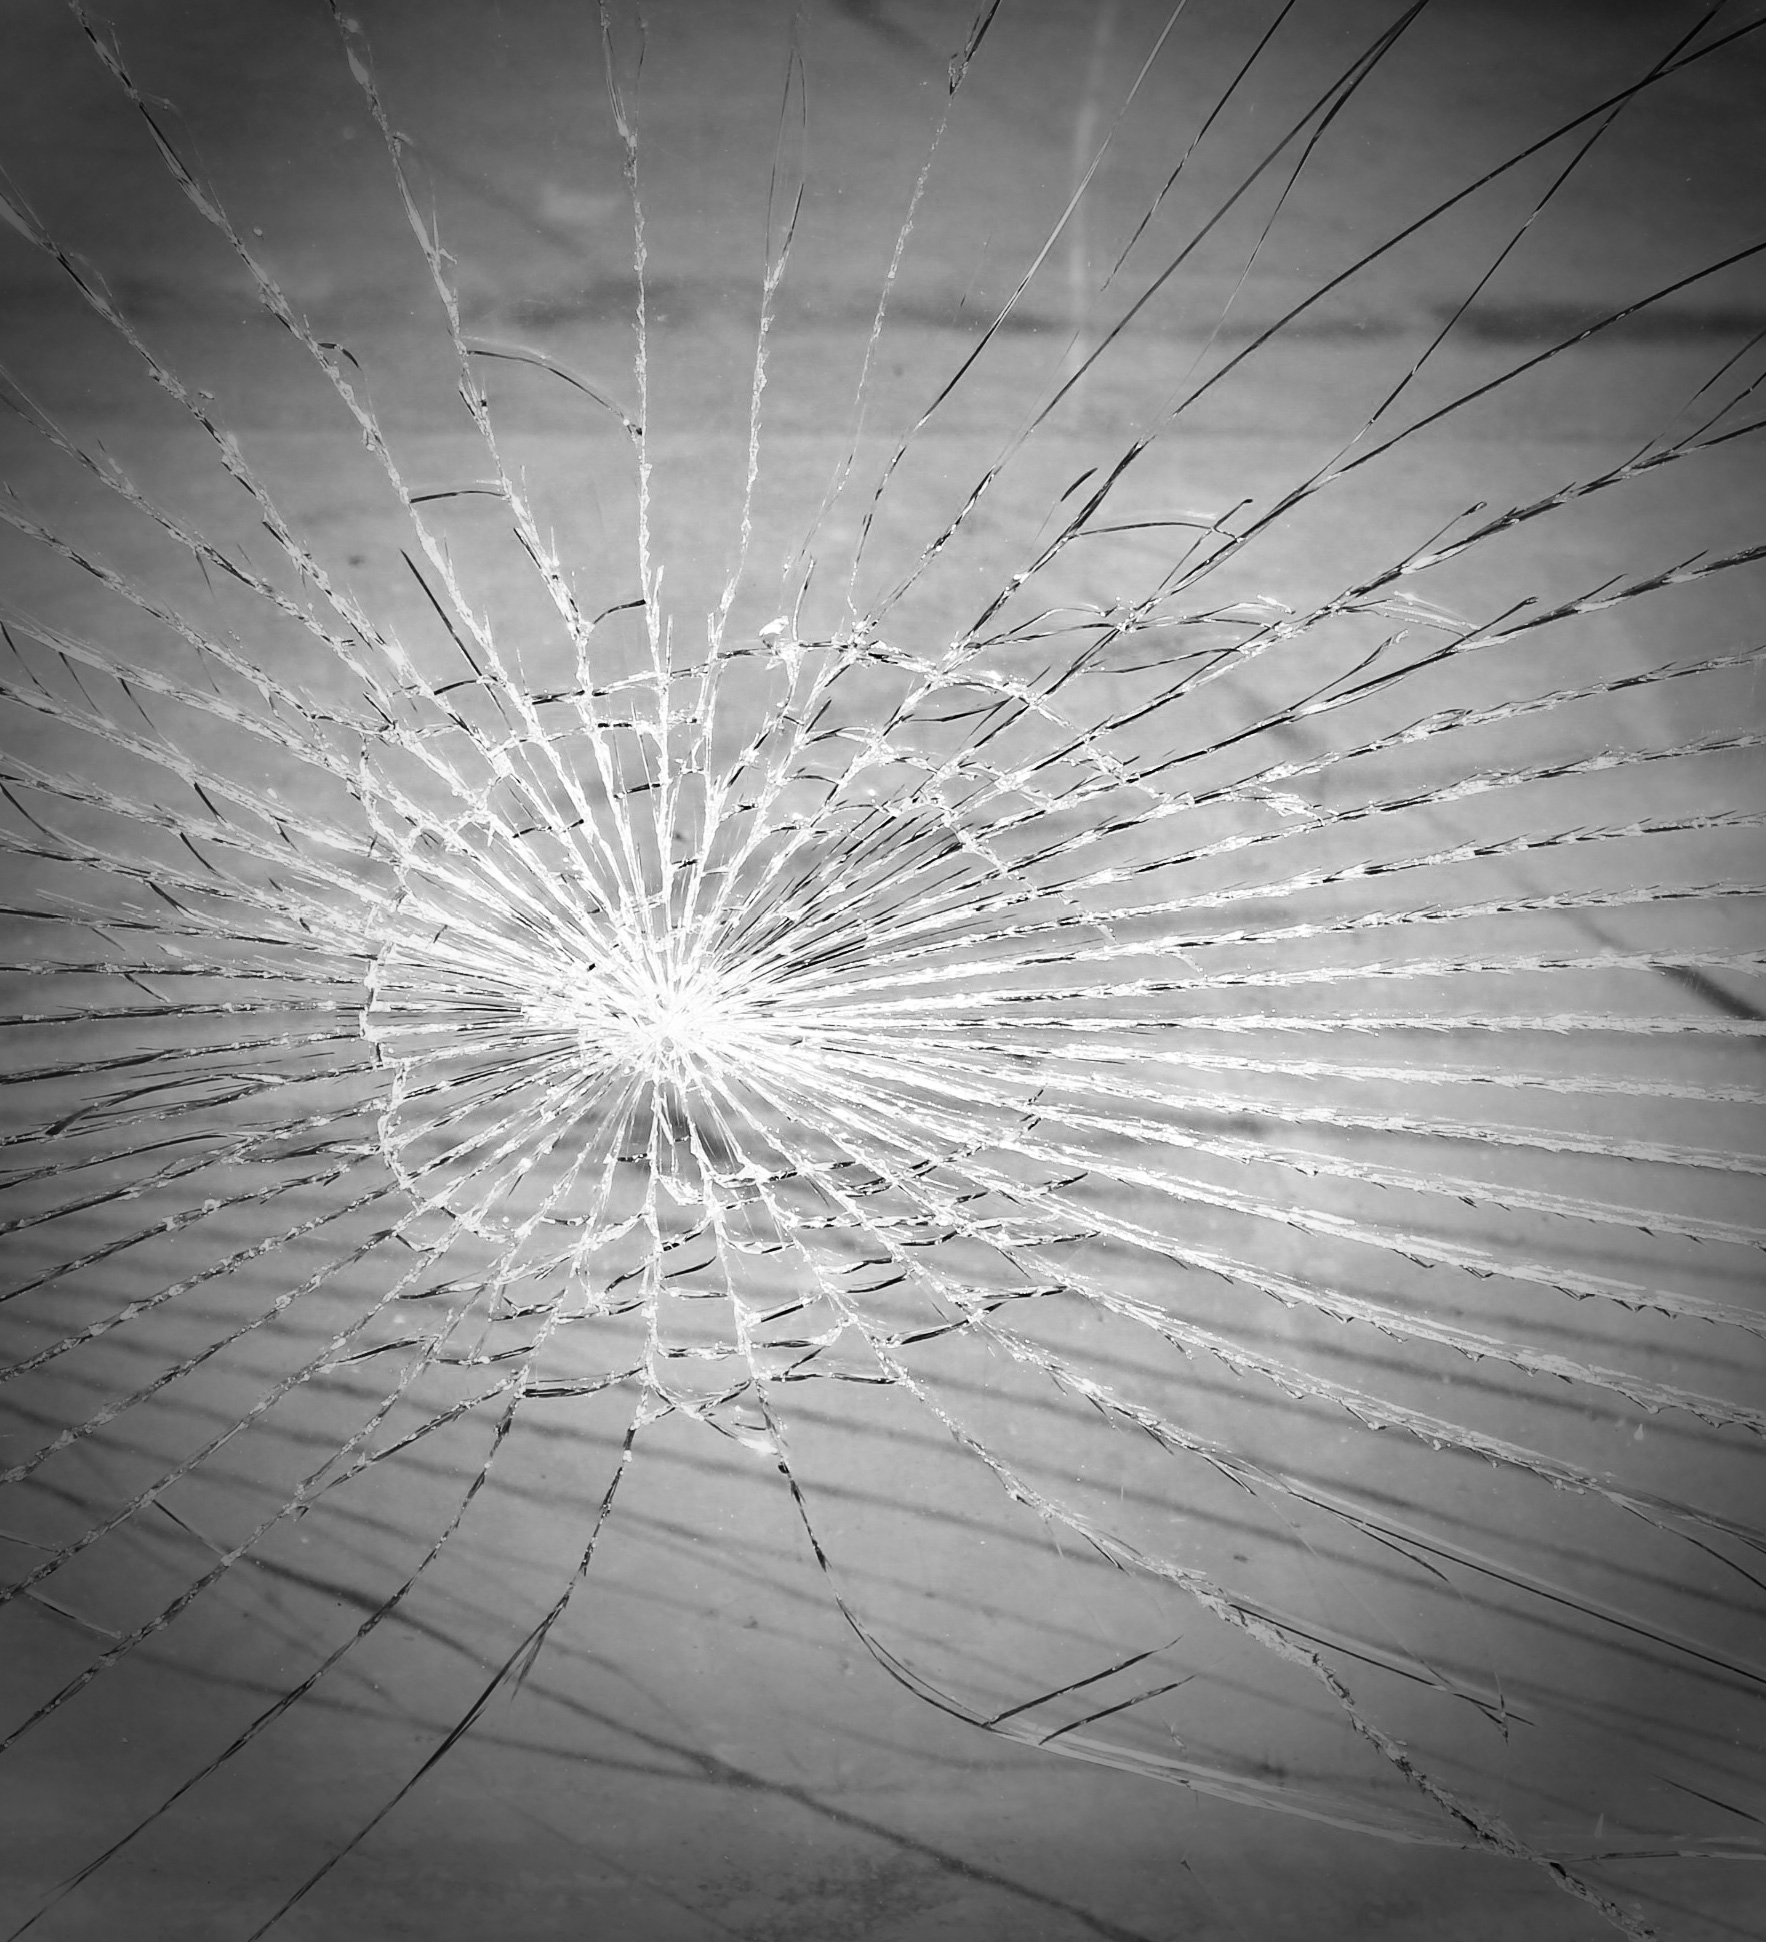 glass-breakage-286099_